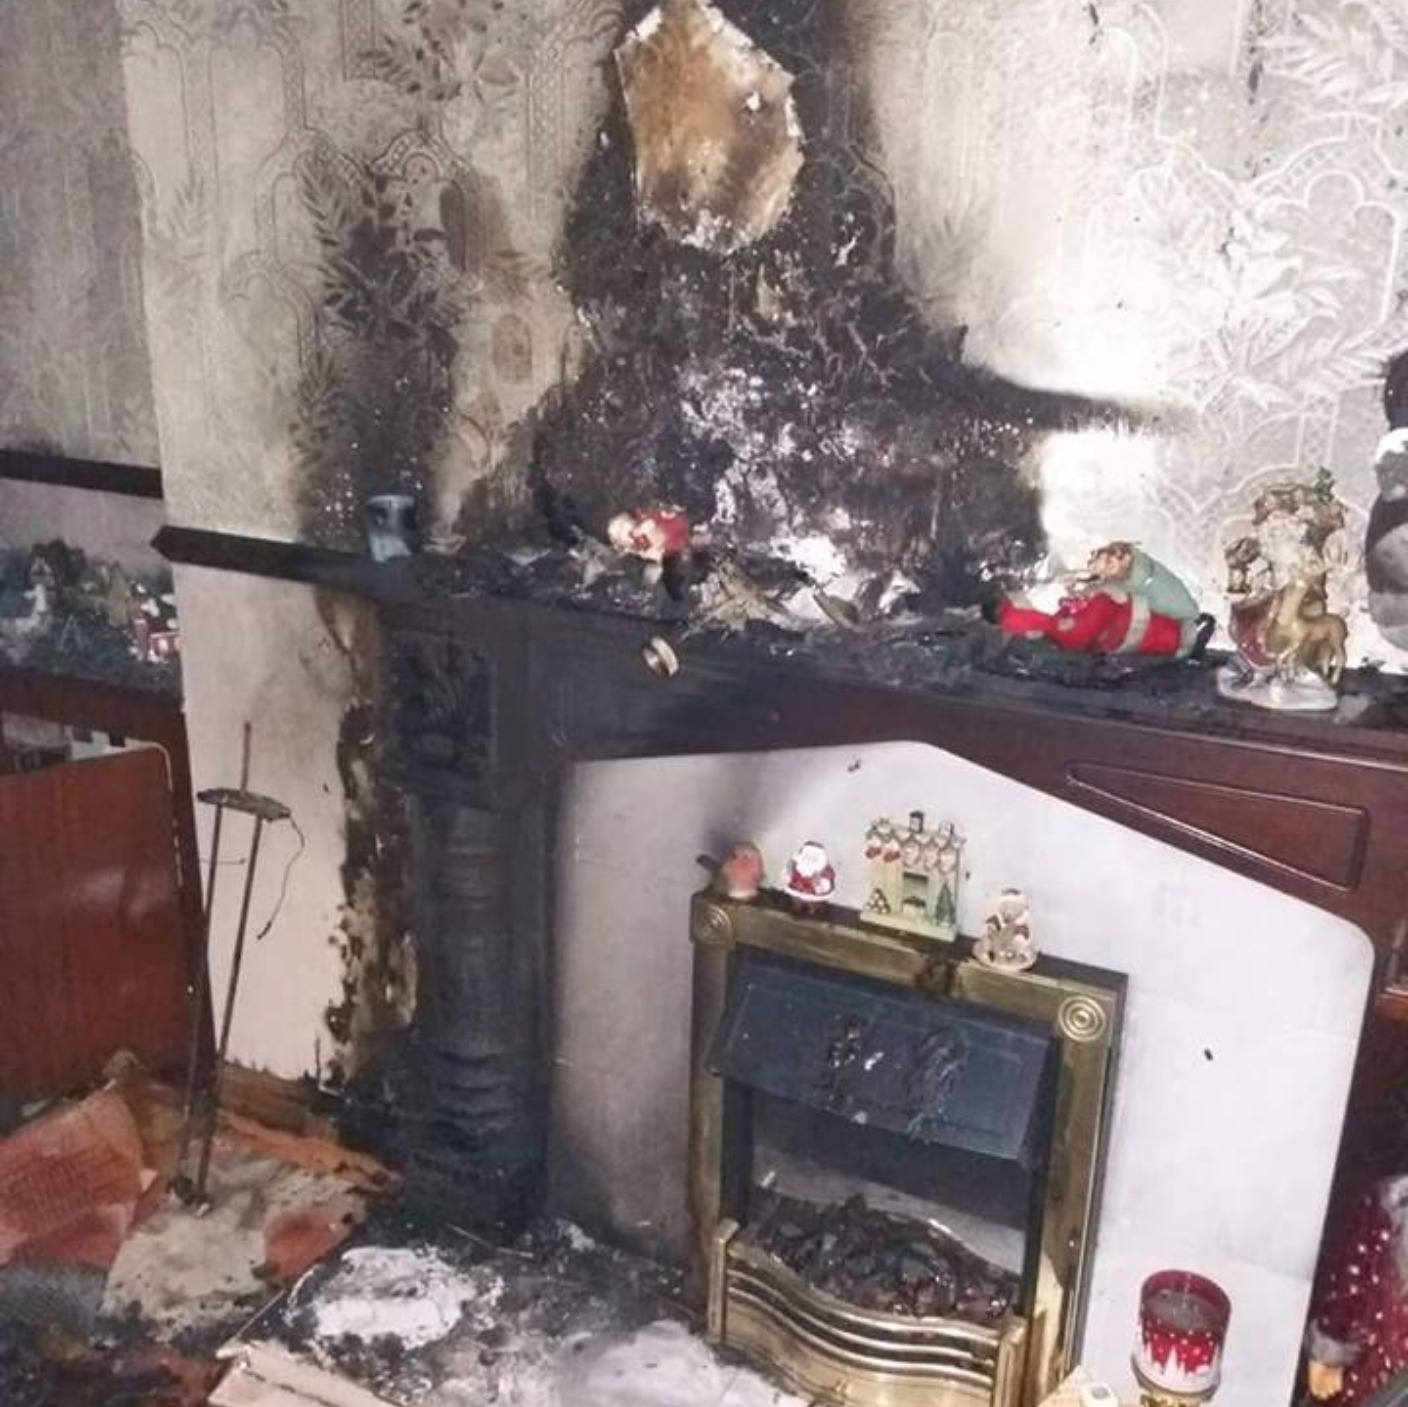 Candle And Christmas Decorations Started Belfast Fire